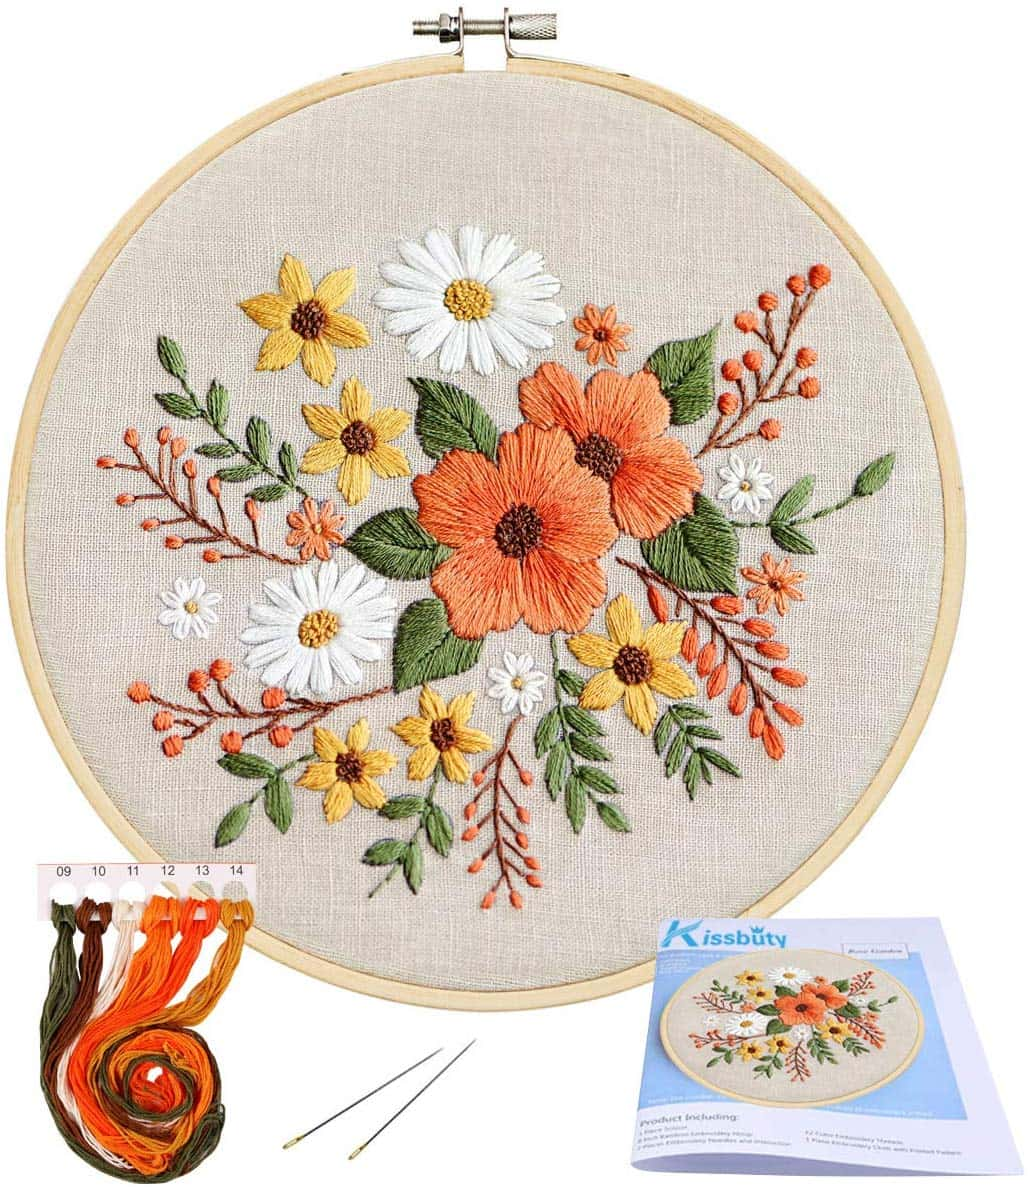 Full range of embroidery starter kit with pattern